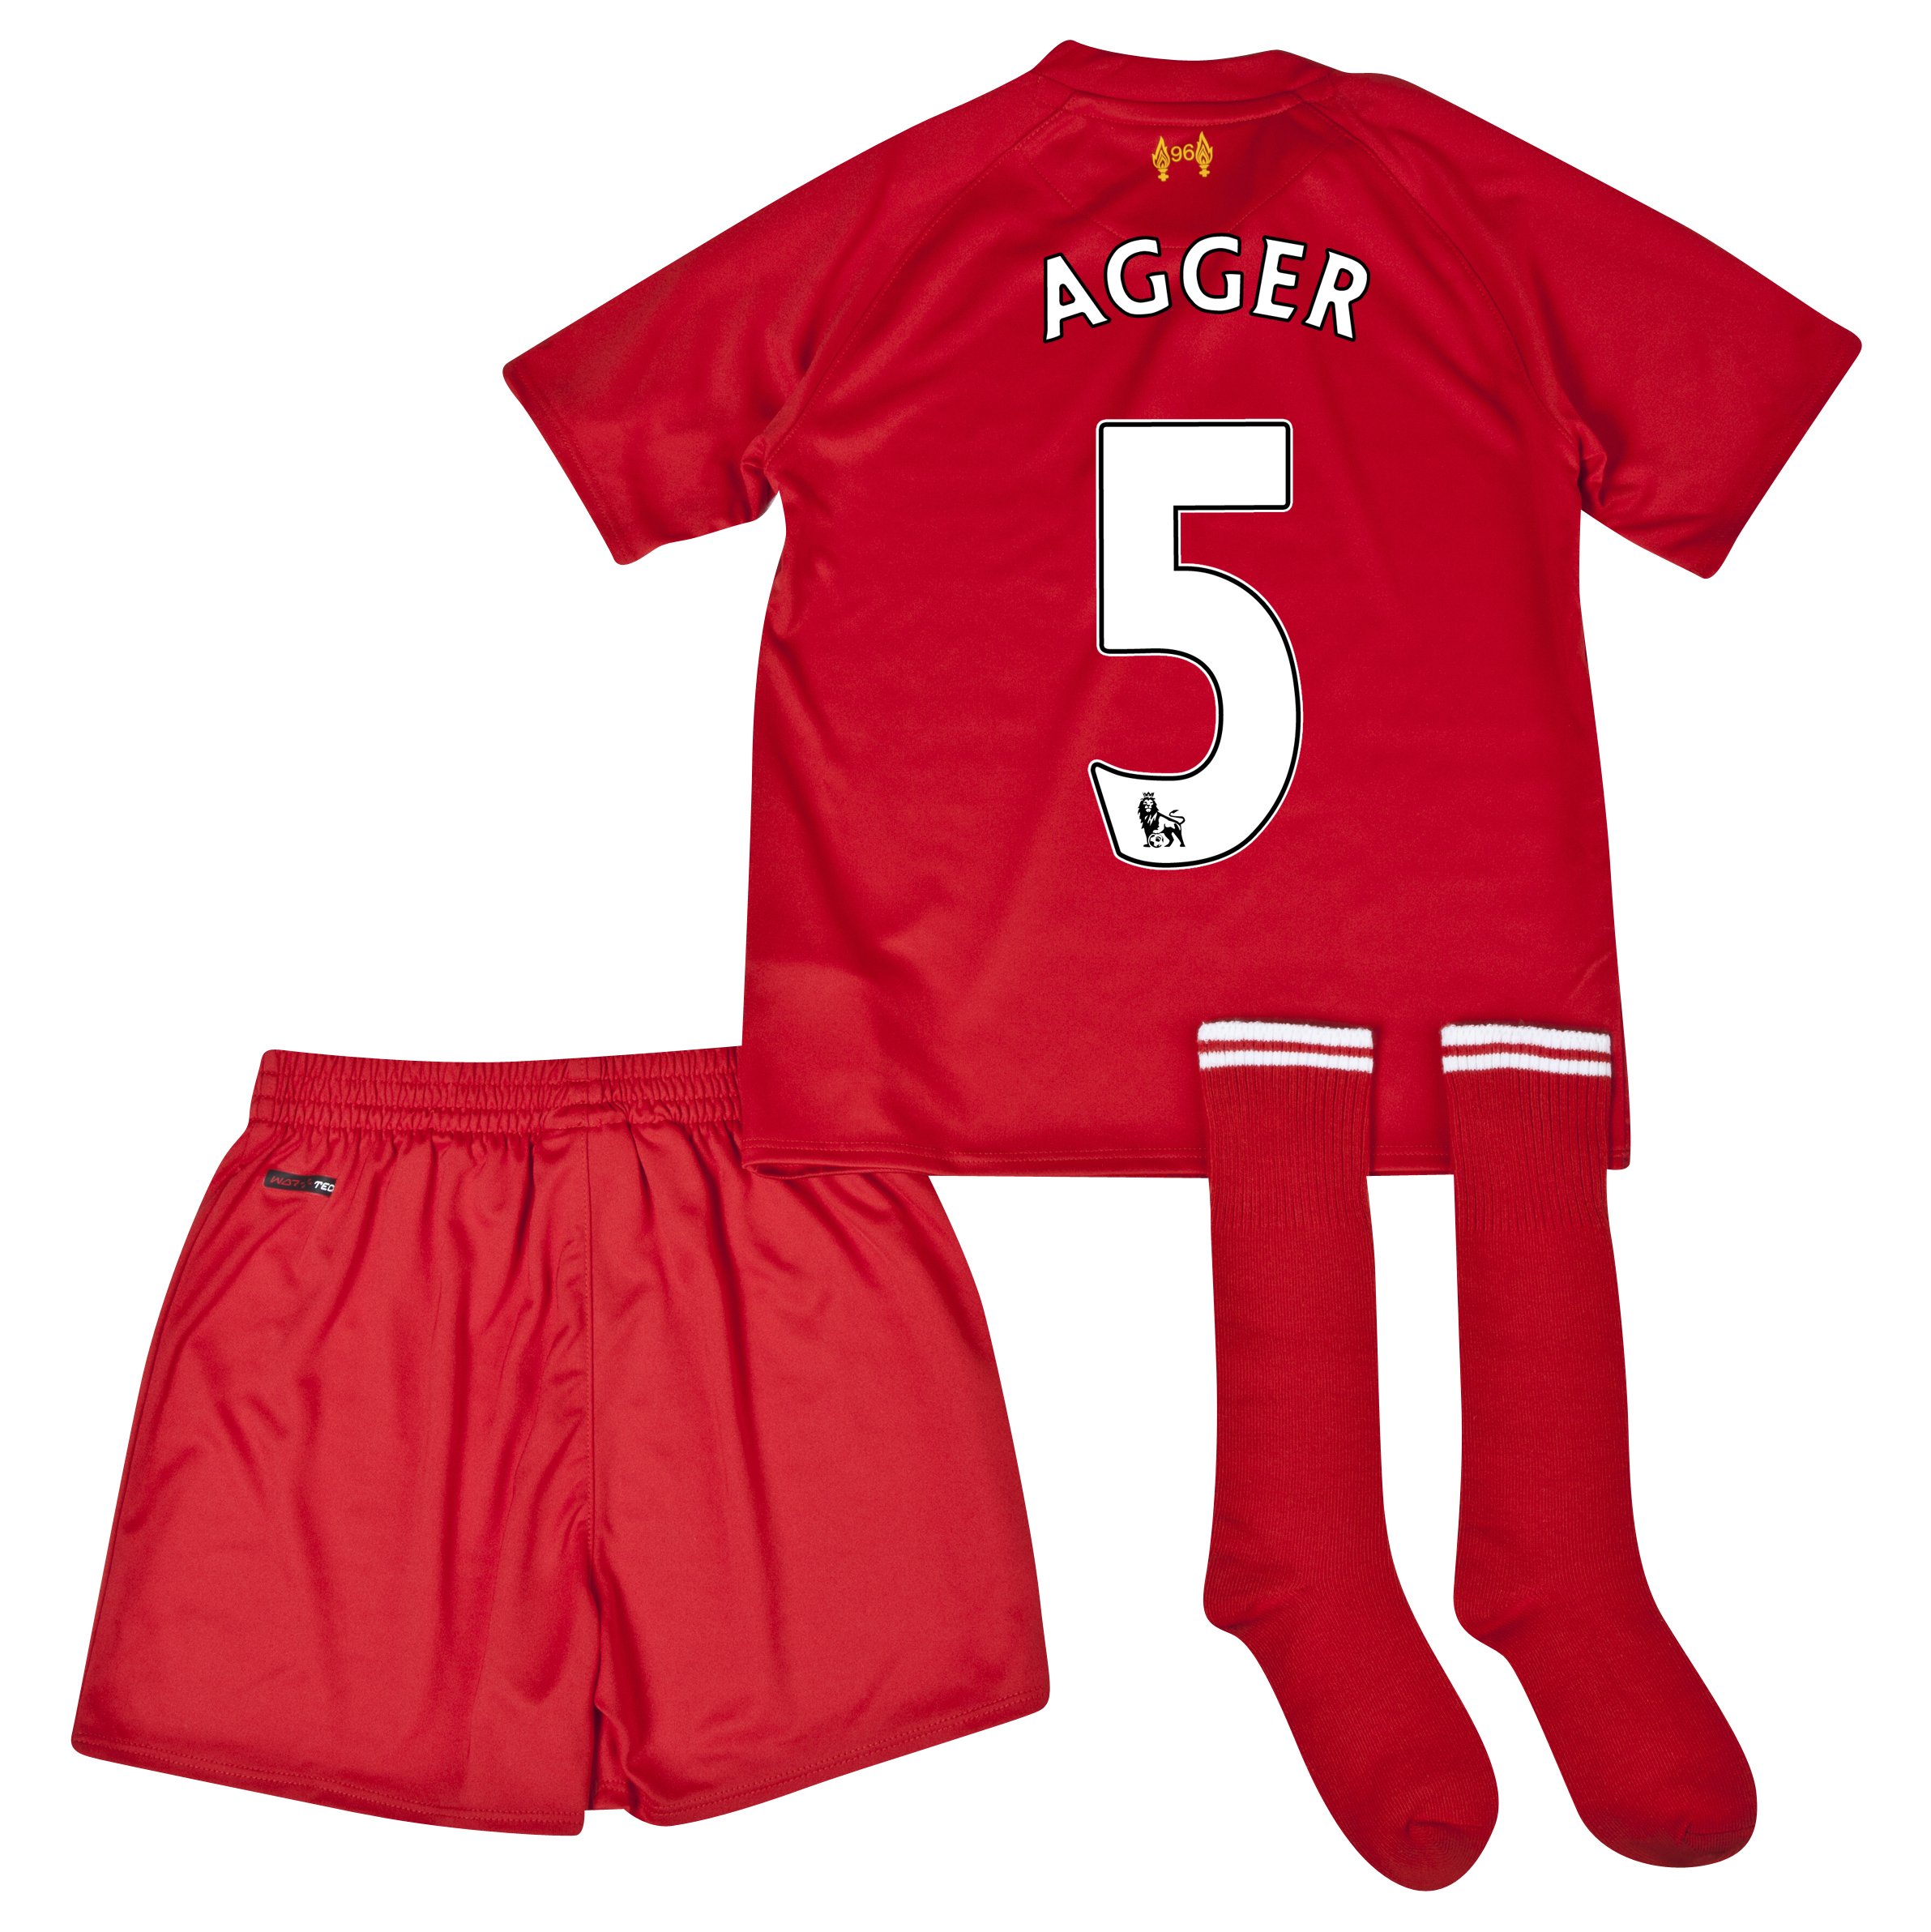 Liverpool Home Infant Kit 2013/14 with Agger 5 printing